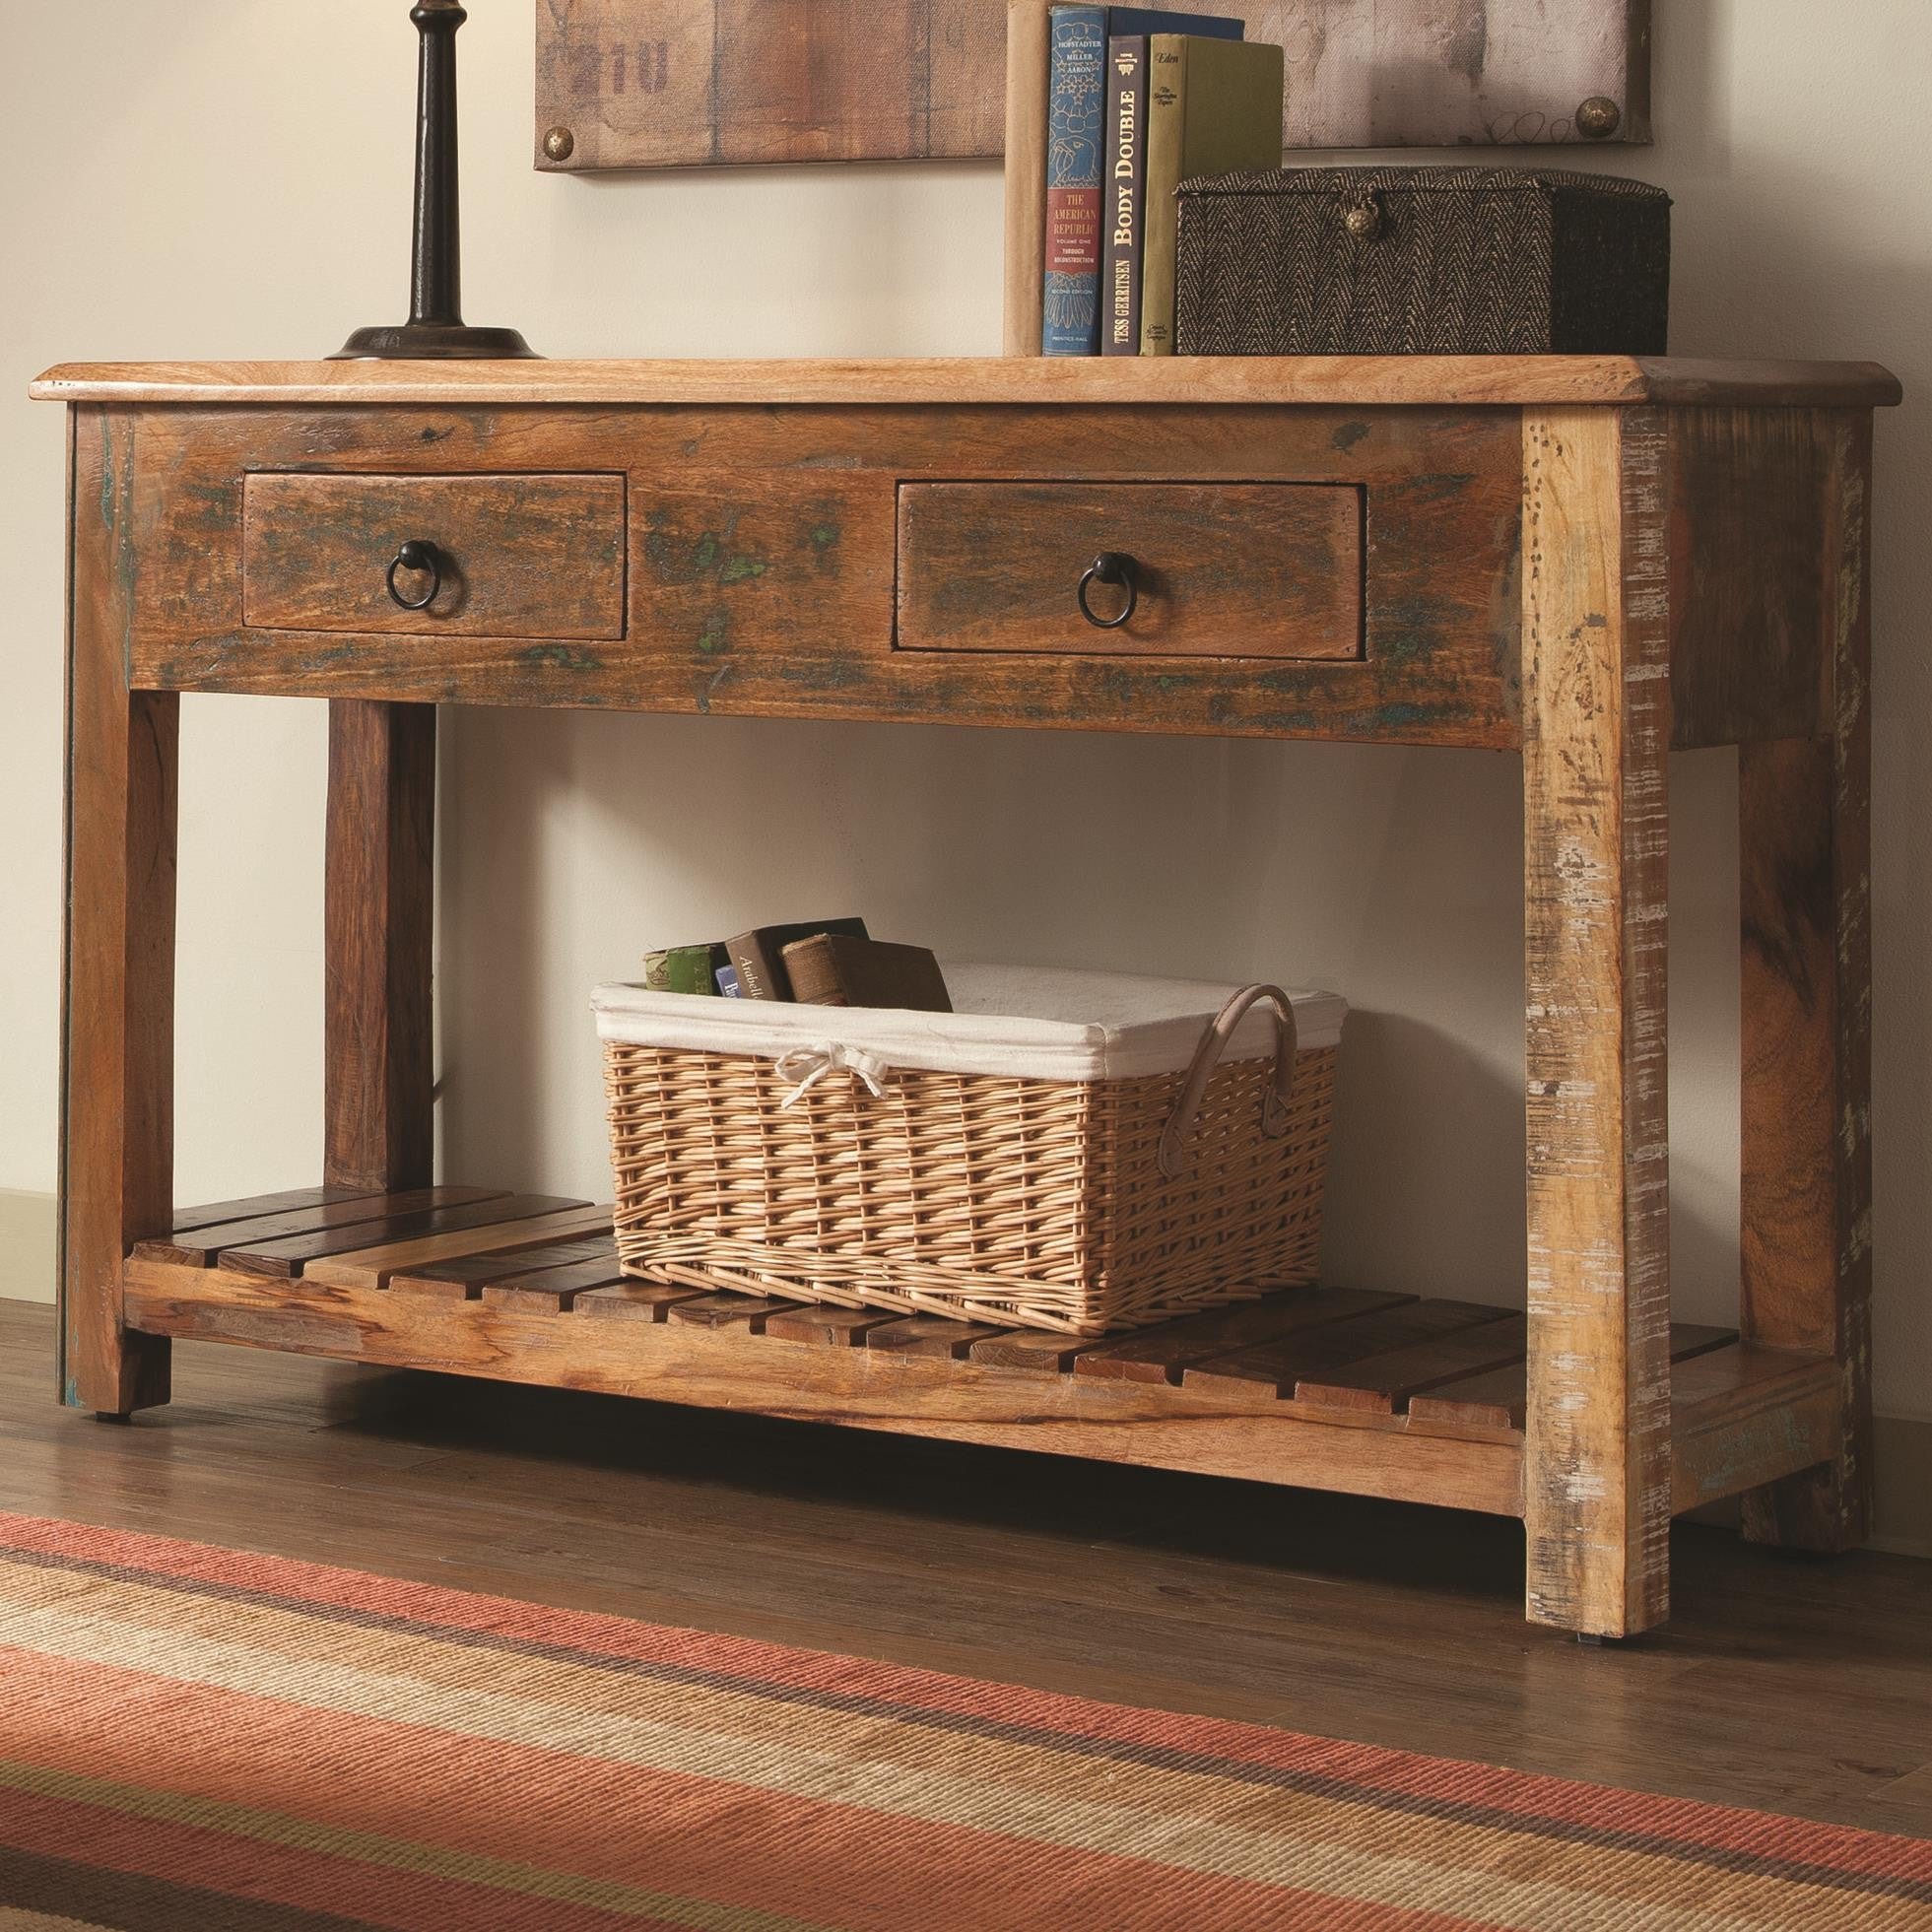 rustic console table w drawers columbia sc  carolina mattress - rustic console table w drawers